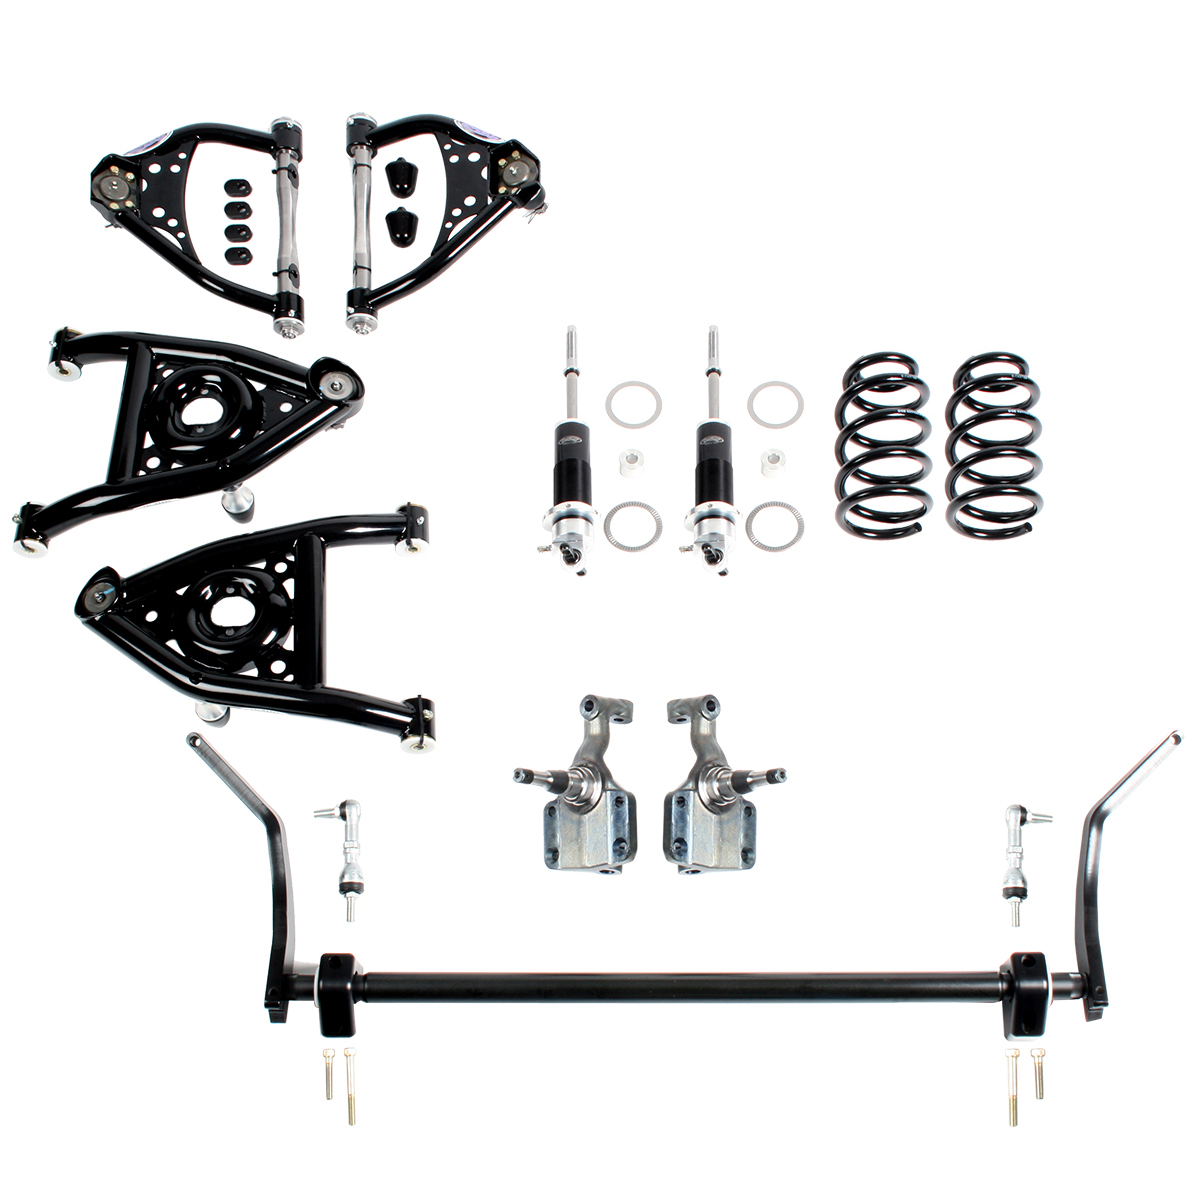 Detroit Speed  Speed Kit 2 Front Suspension Kit with Splined Sway Bar Double Adjustable Shocks 1967 A-Body BBC